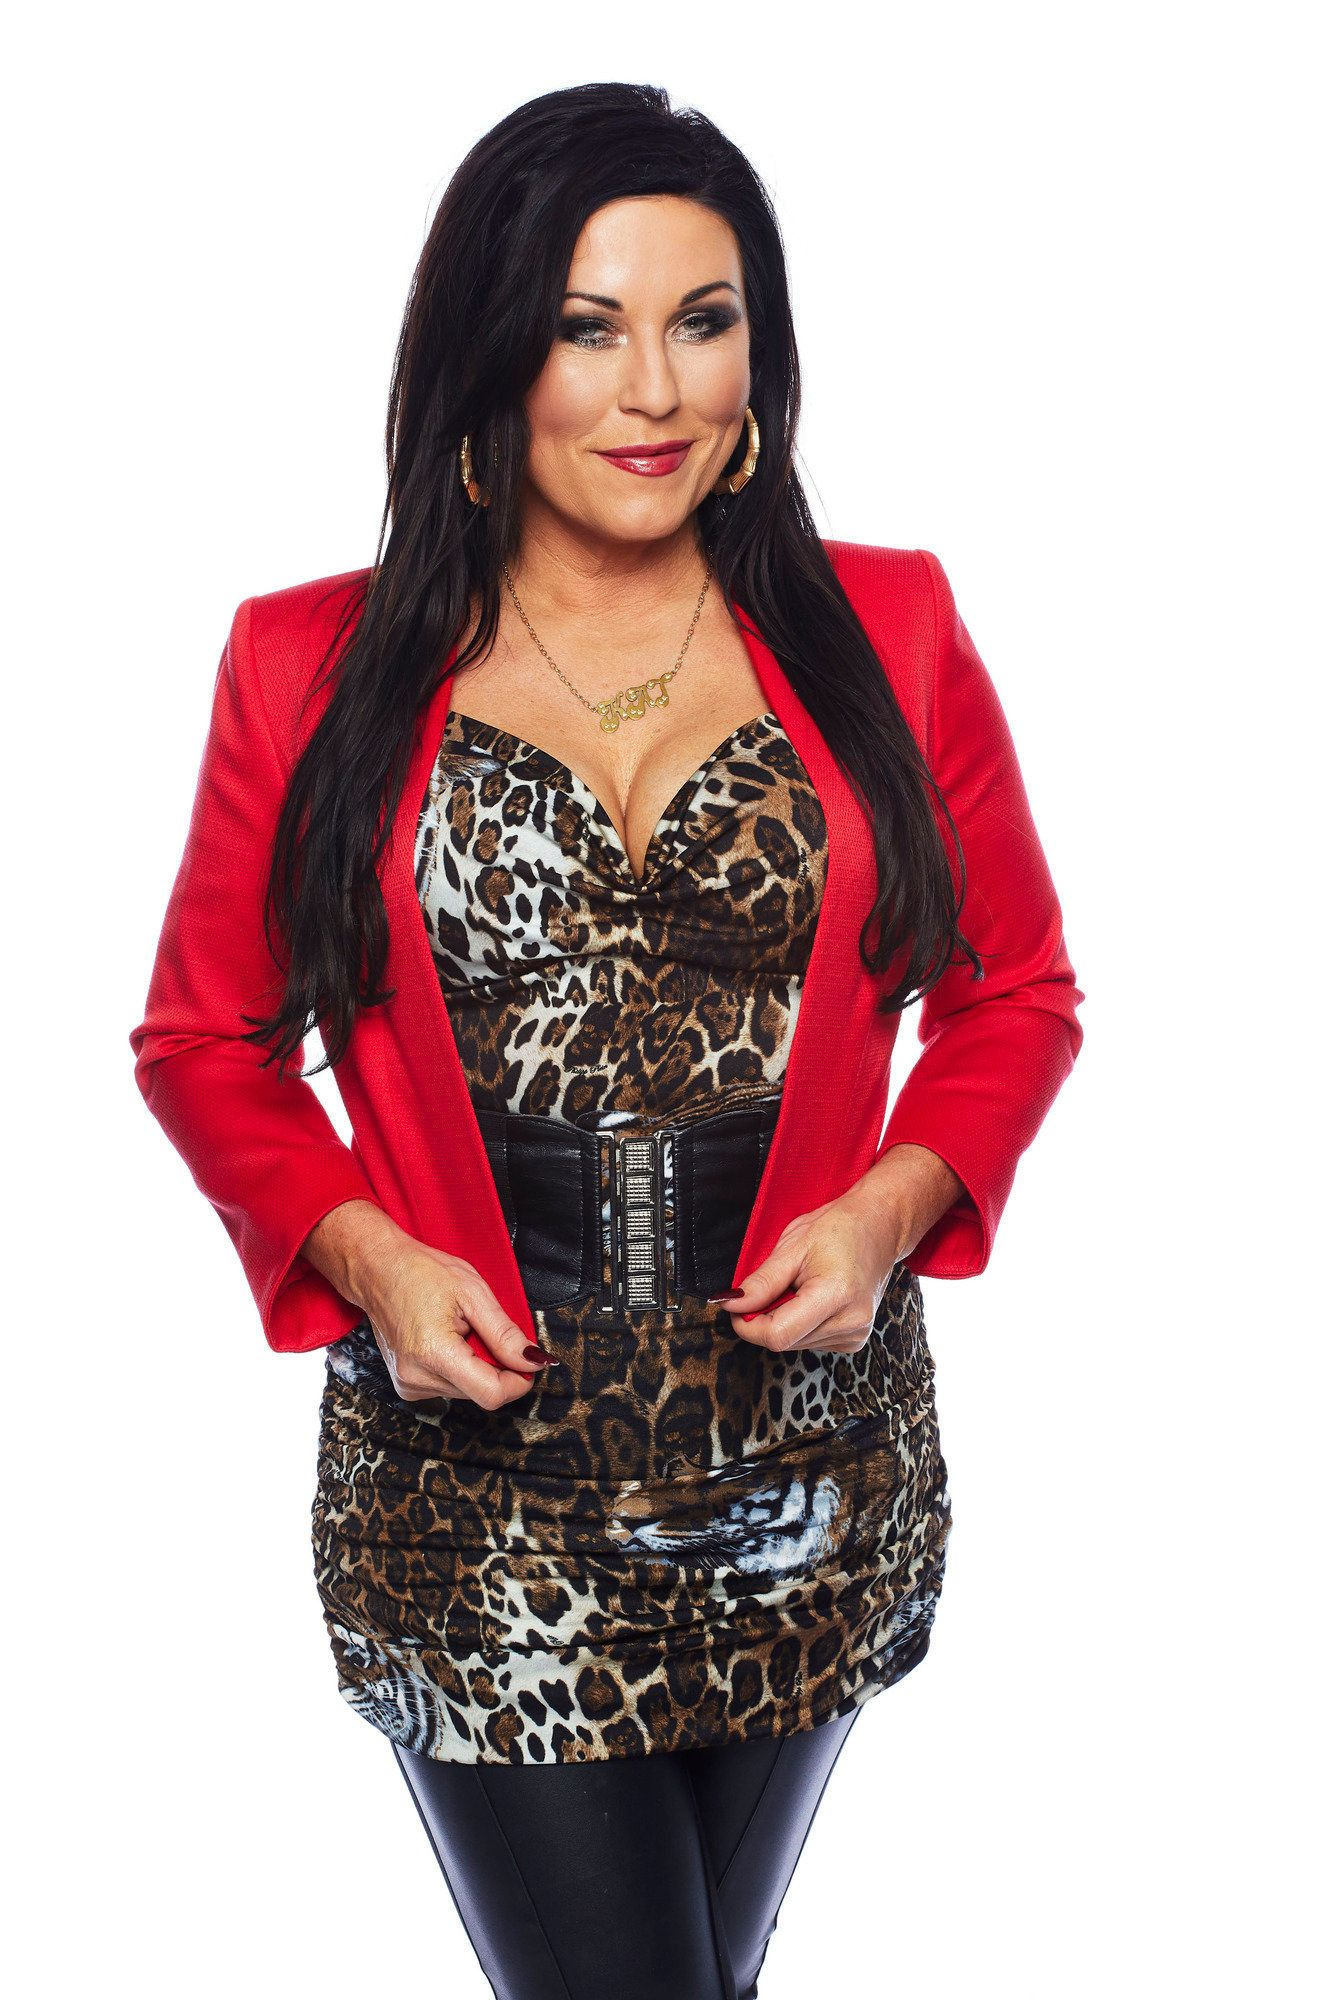 Charting The Many The Highs And Lows Of EastEnders' Kat Slater